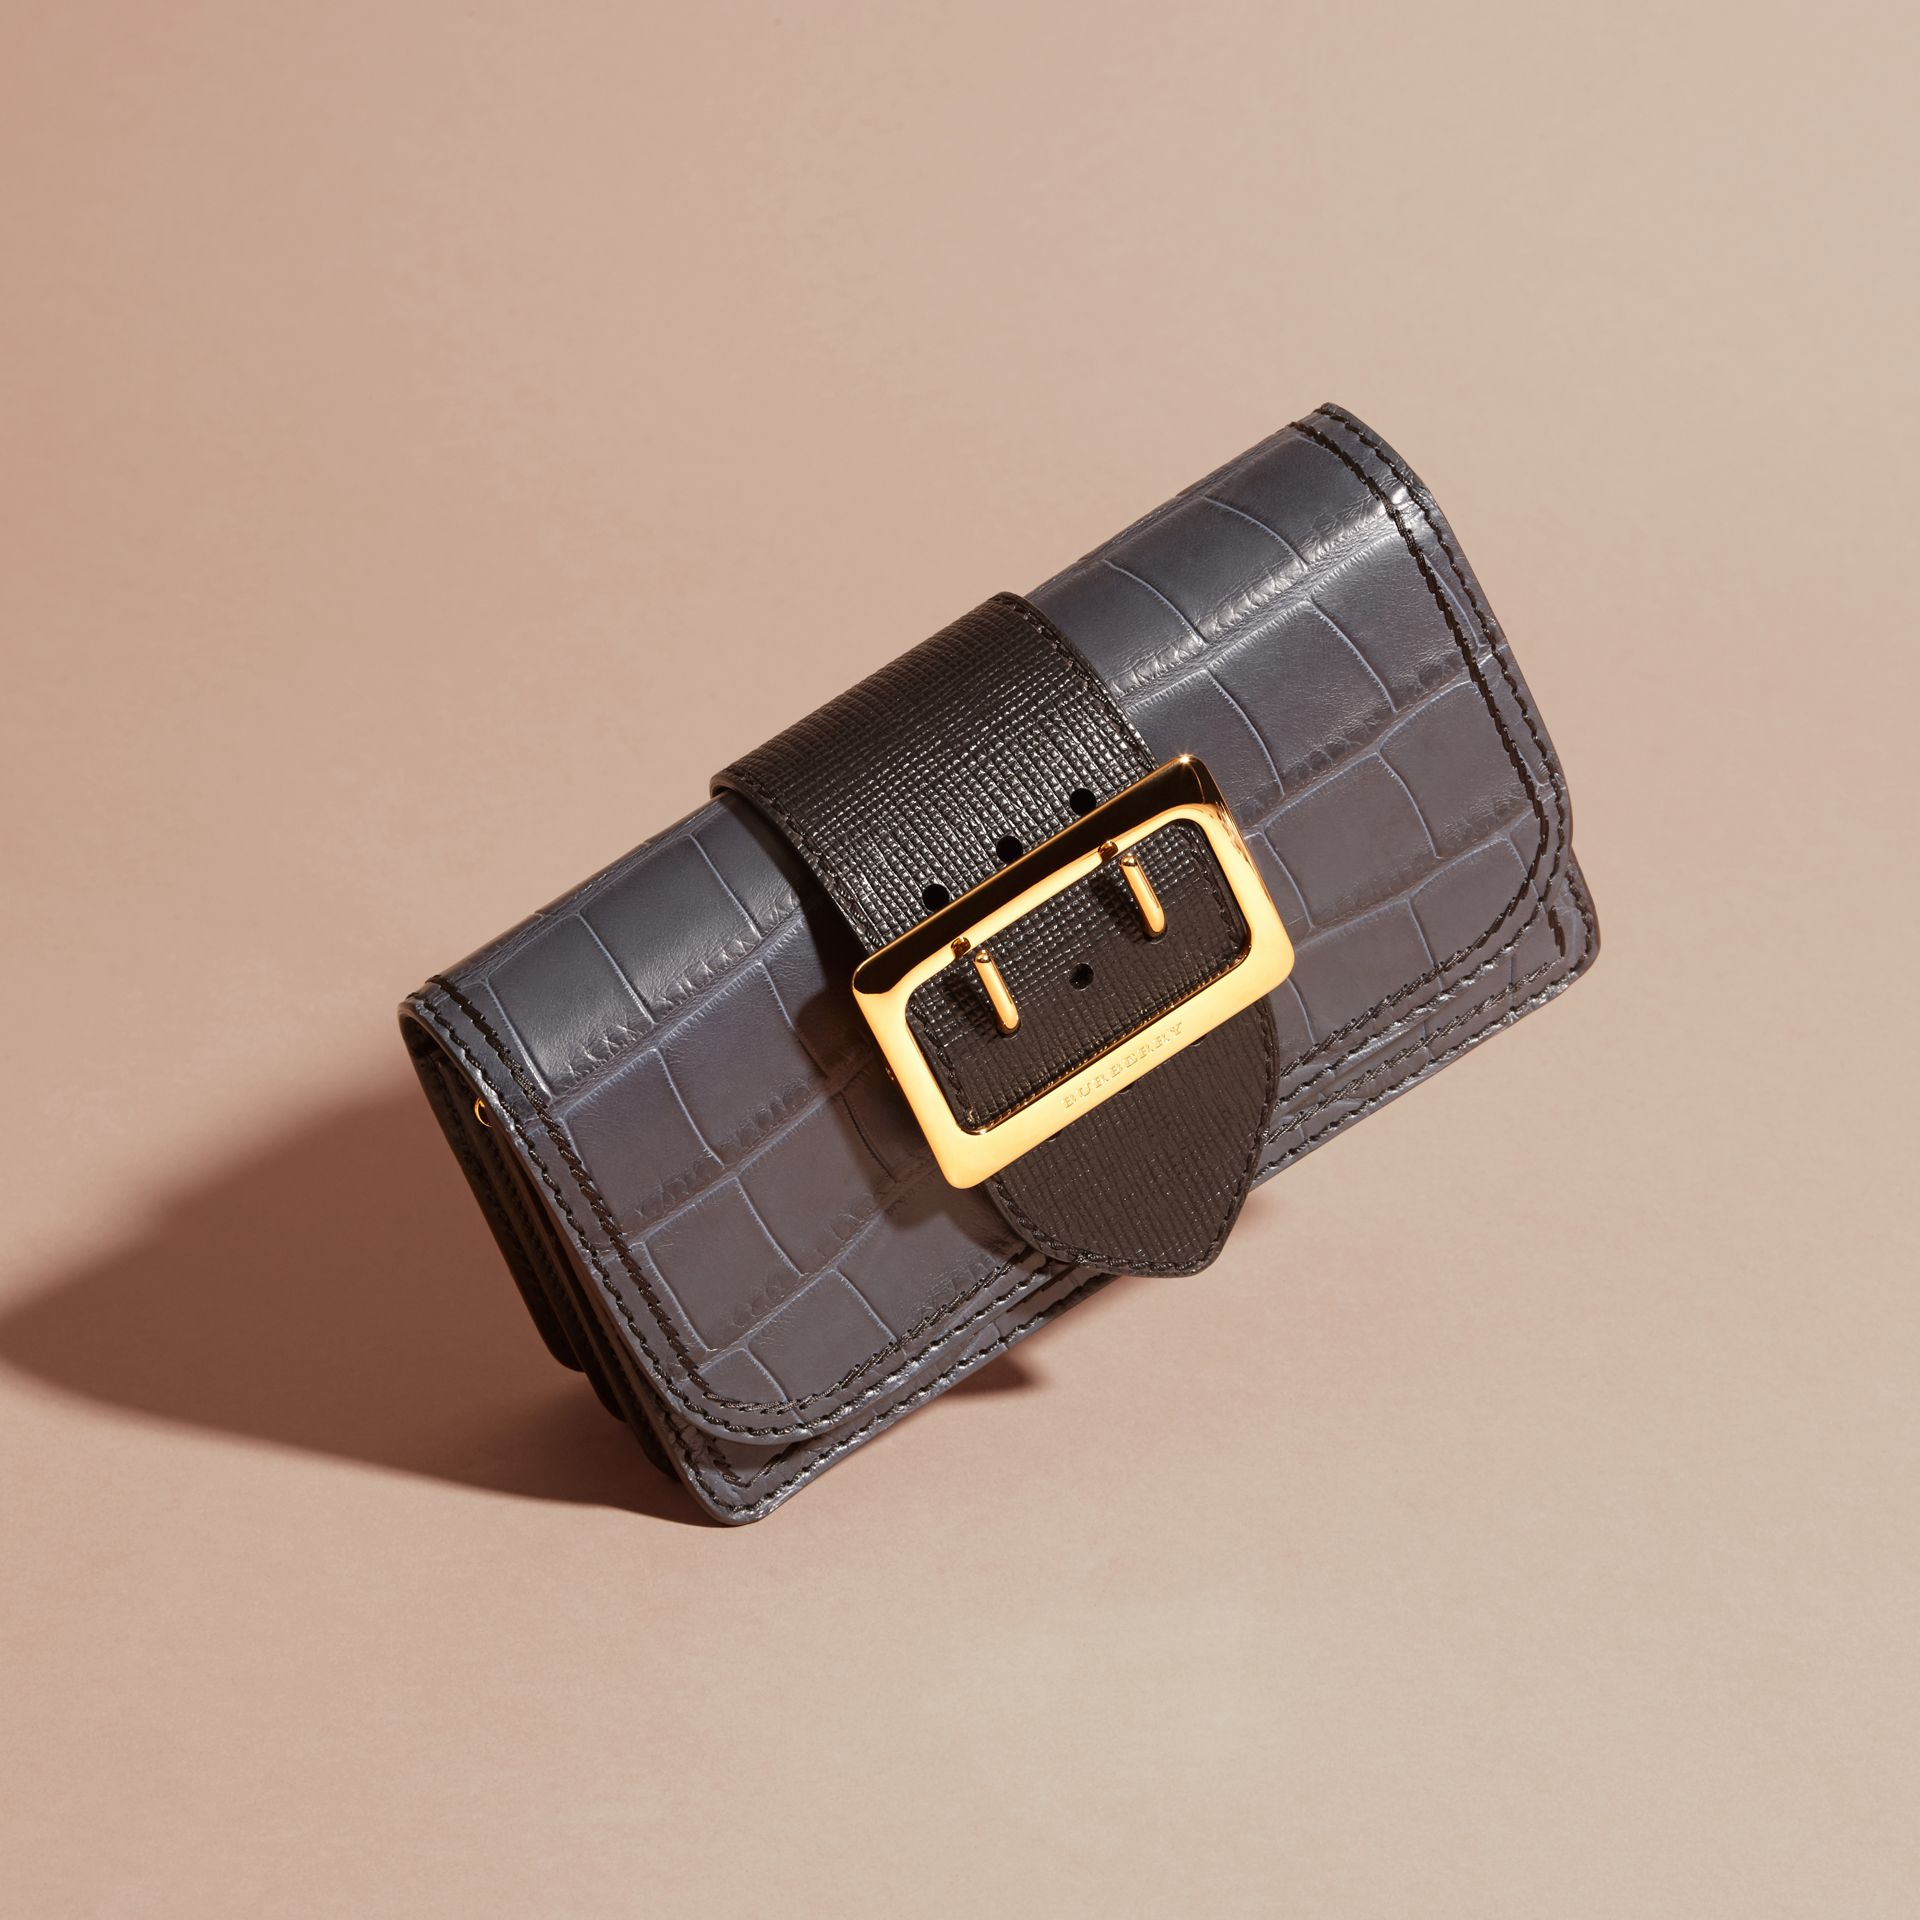 Petit sac The Buckle en alligator et cuir (Marine/noir) - Femme | Burberry - photo de la galerie 8